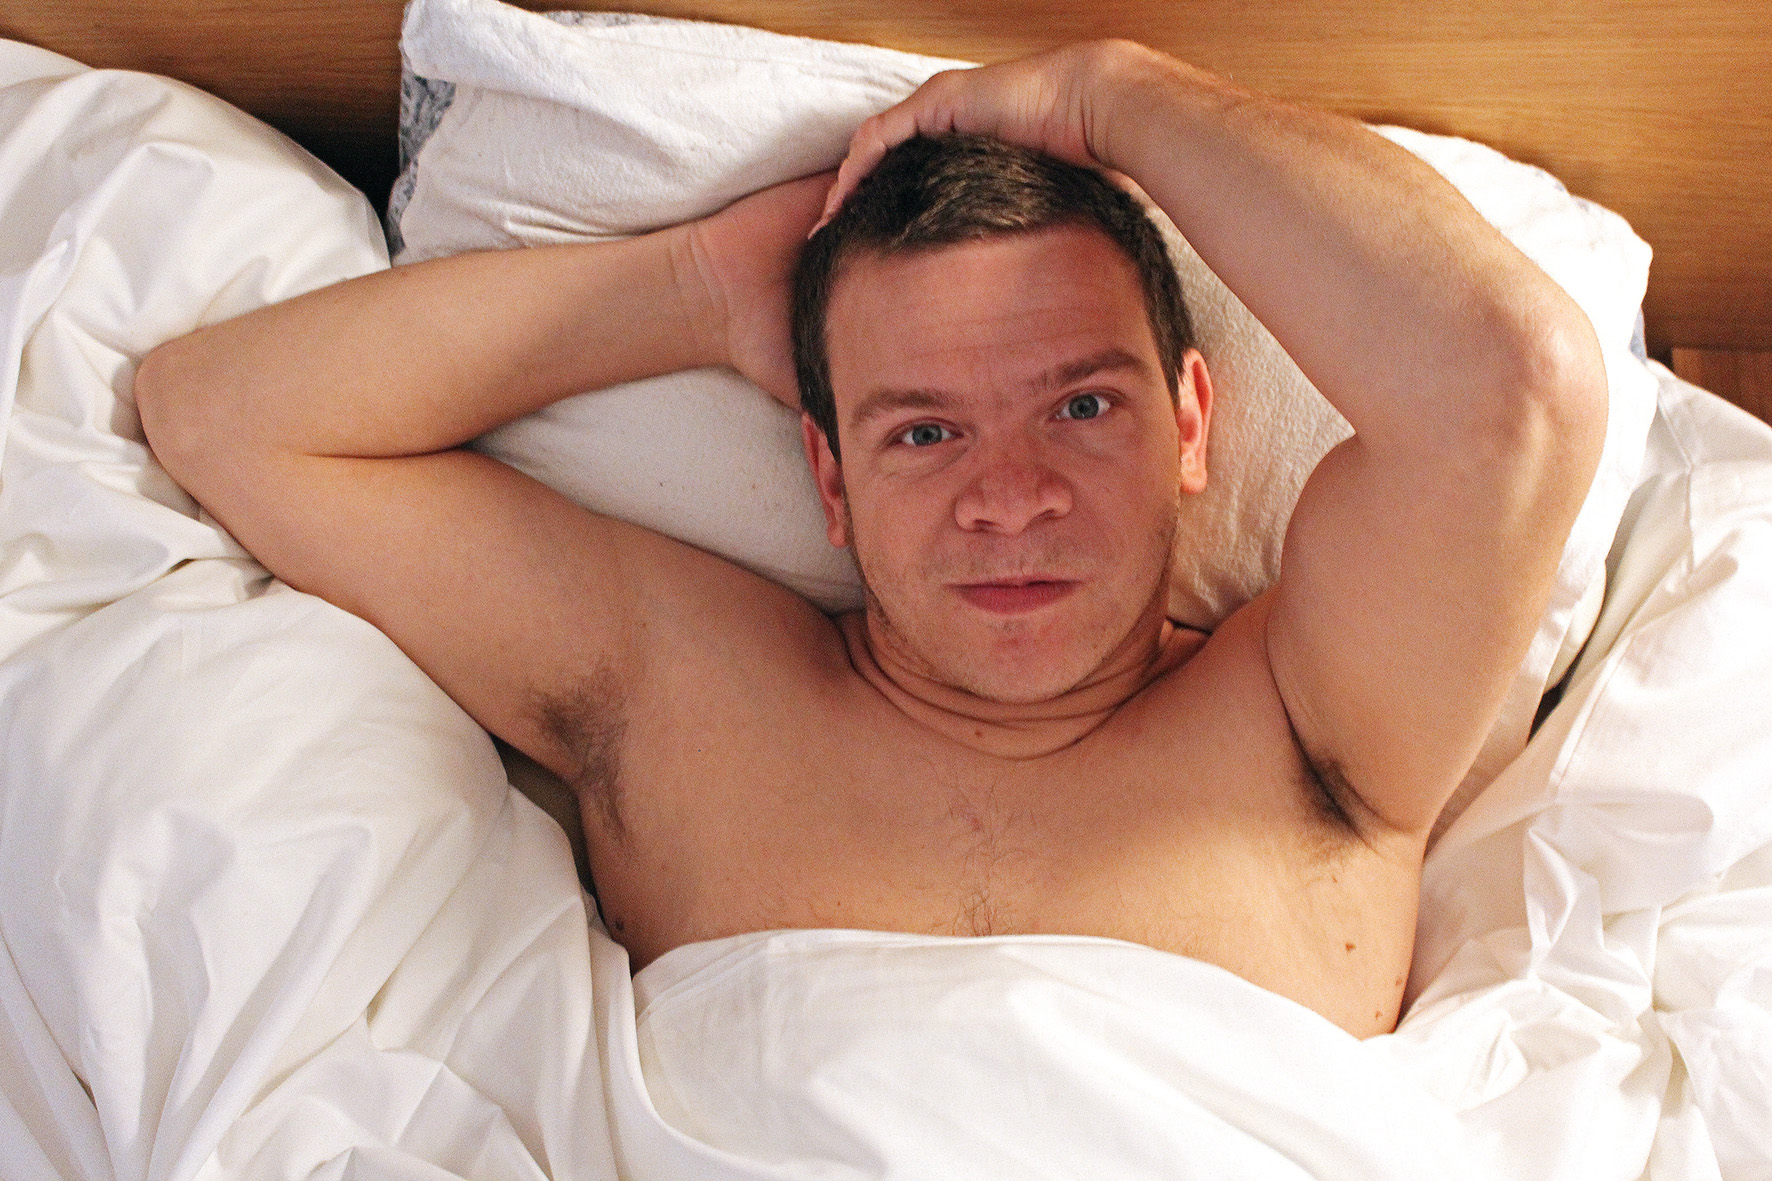 Robert, a white middle aged man, lies back in bed facing the camera. He has the white bed covers pulled up over his nipples and his hands back behind his head. He looks smoulderingly at the camera.